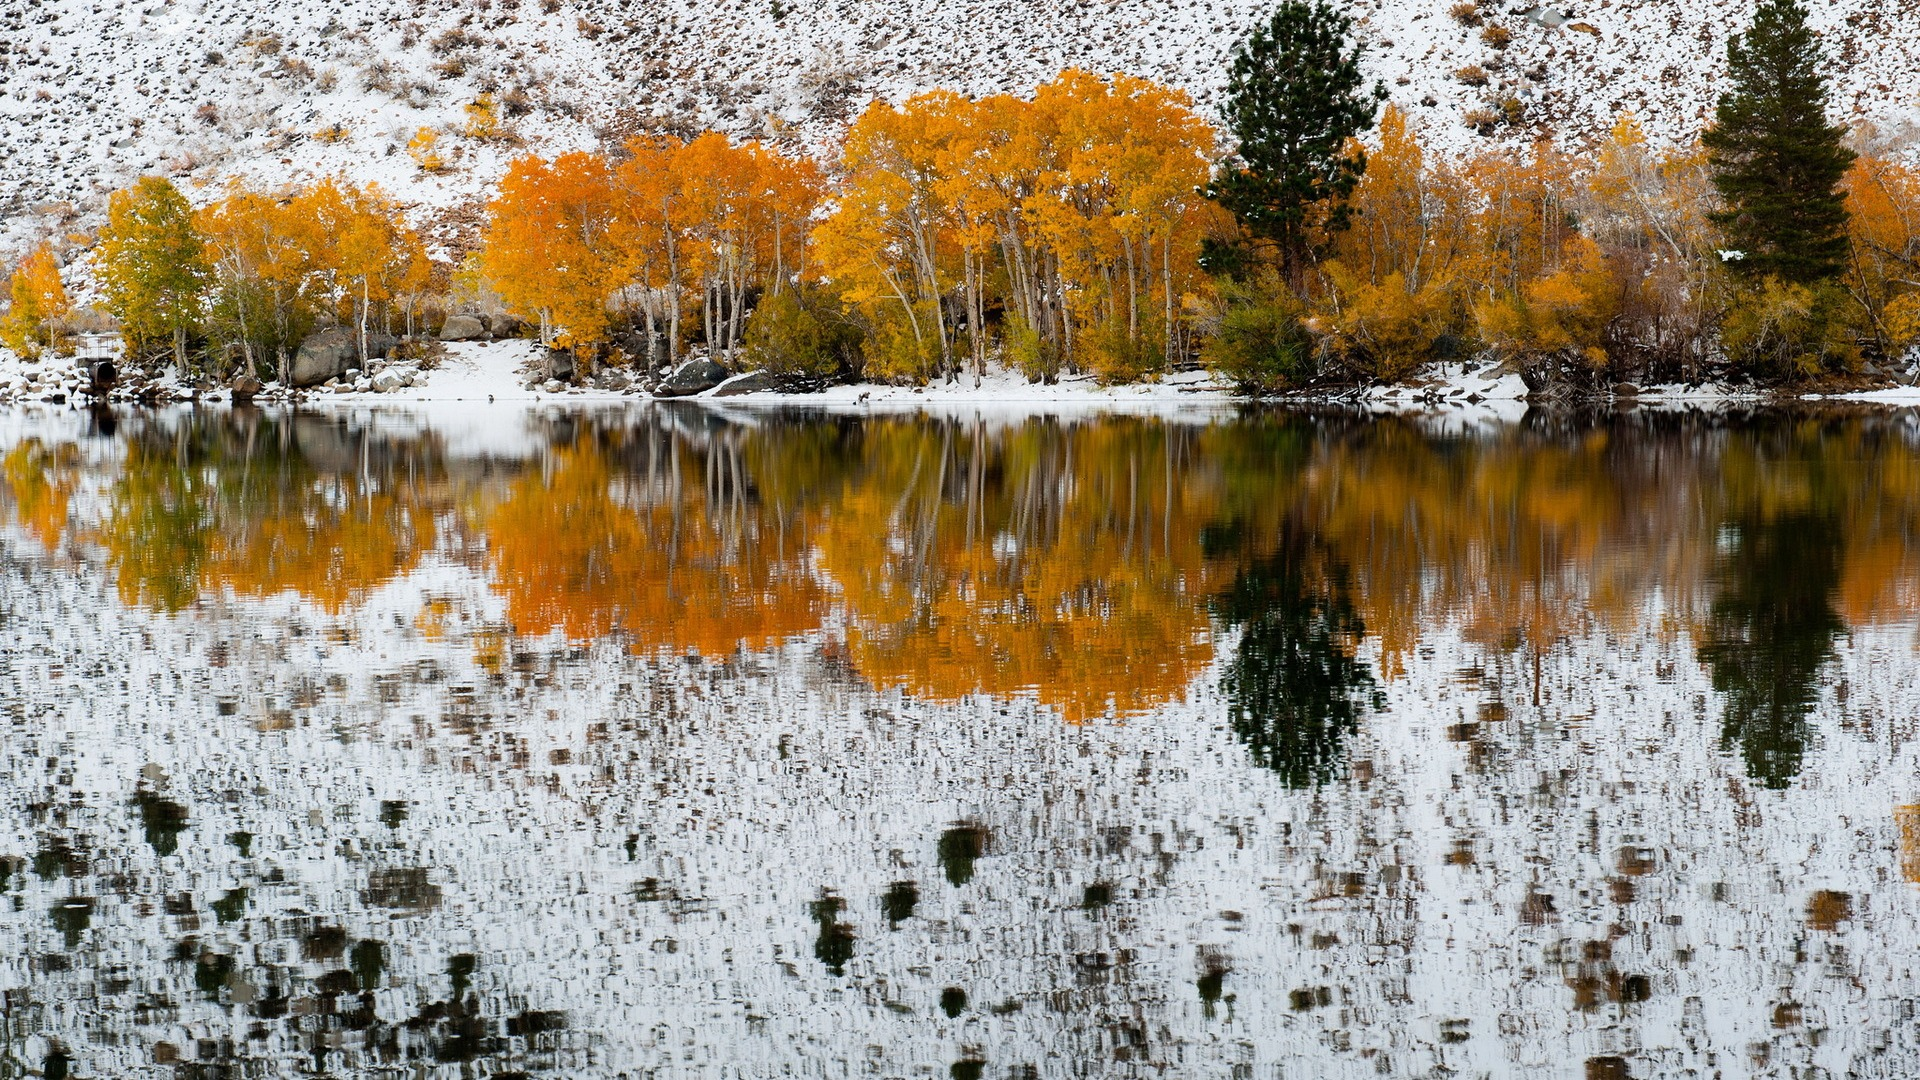 Download-California-refections-Fall-Snow-Bishop-Creek-section-Resolution-1920x-wallpaper-wp3404958